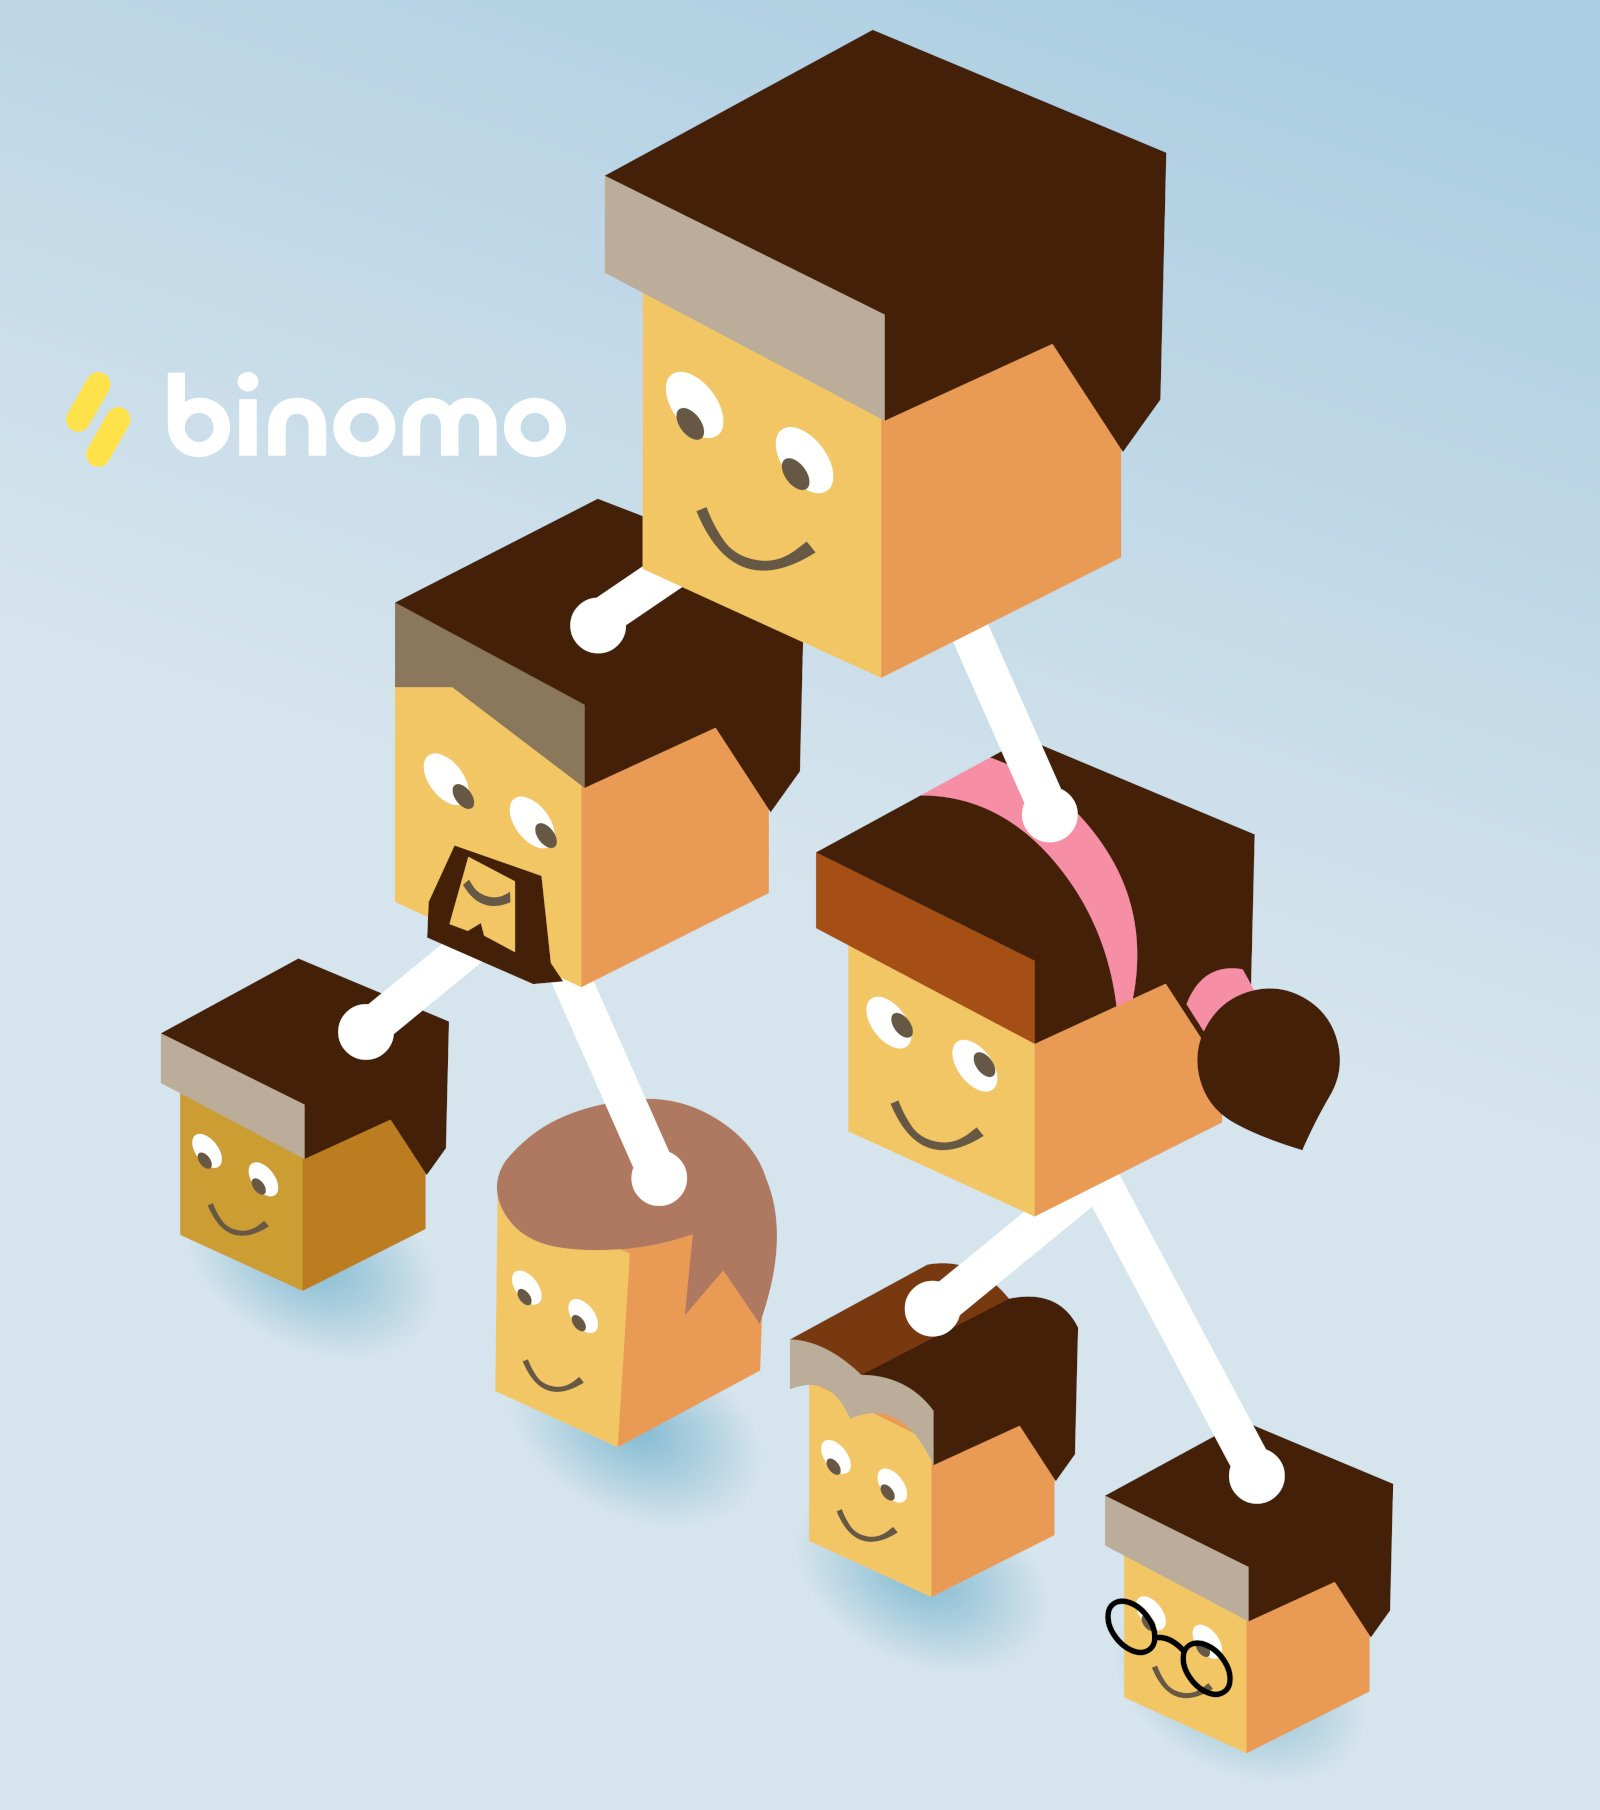 is binomo multi-level finance?